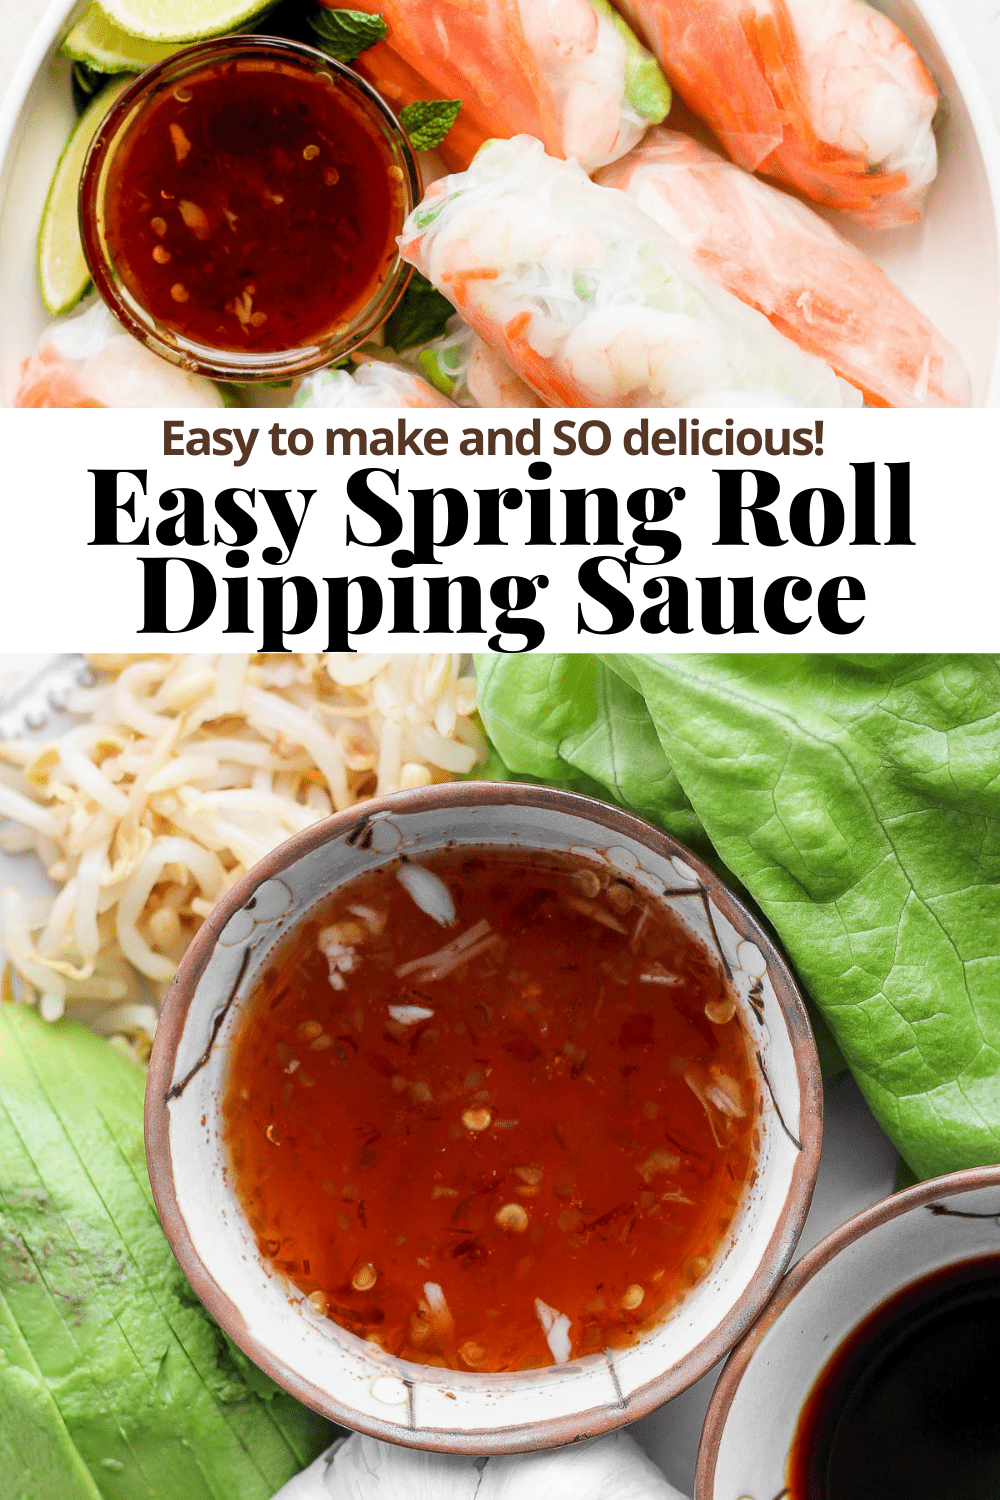 Pinterest image for spring roll dipping sauce.